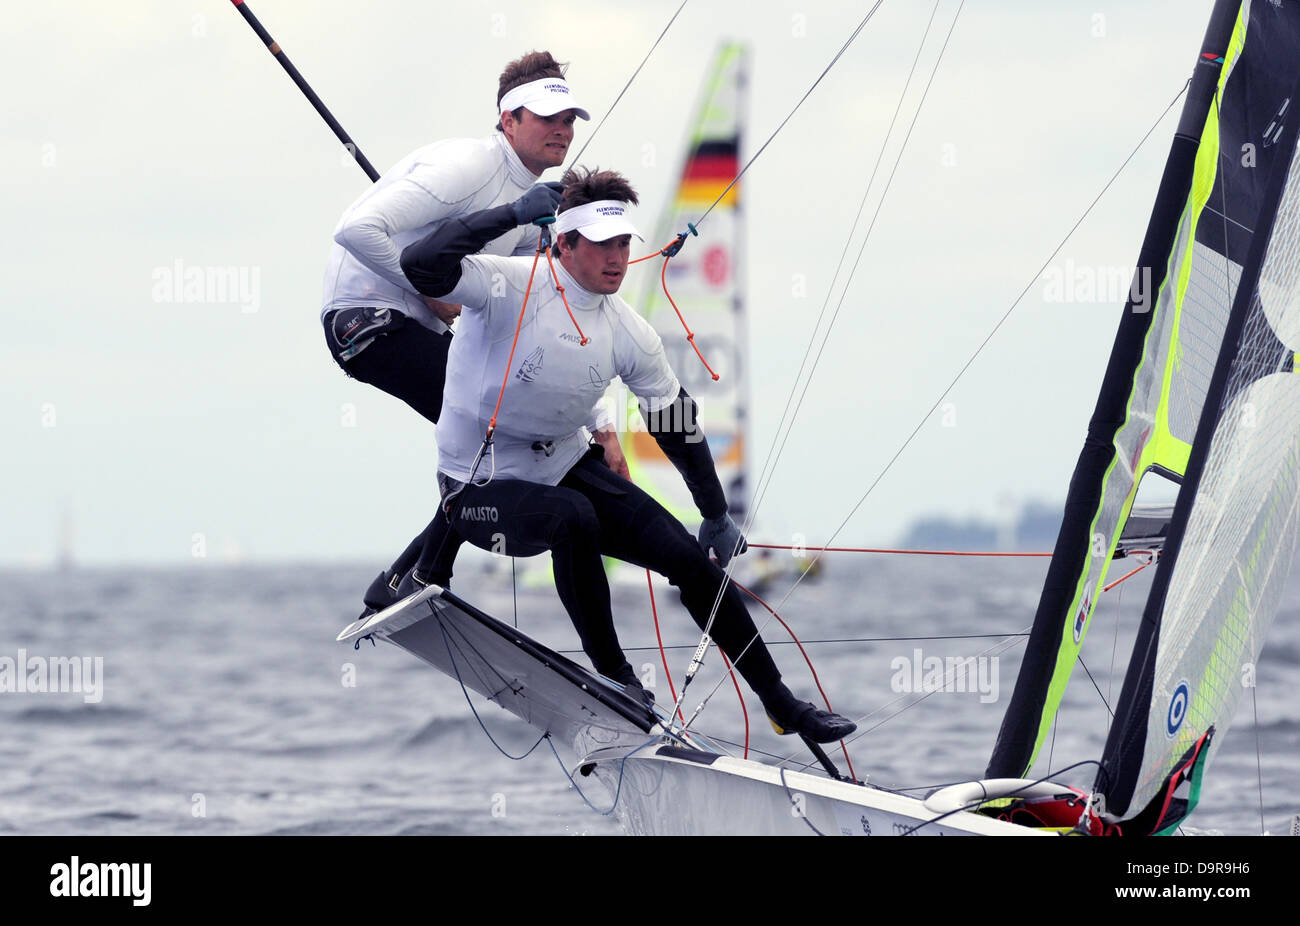 German yachtsmen Lennart Briesenick-Pudenz (L) and Hans Jakob Dethleffsen compete in a regatta of Olympic 49er dinghies - Stock Image